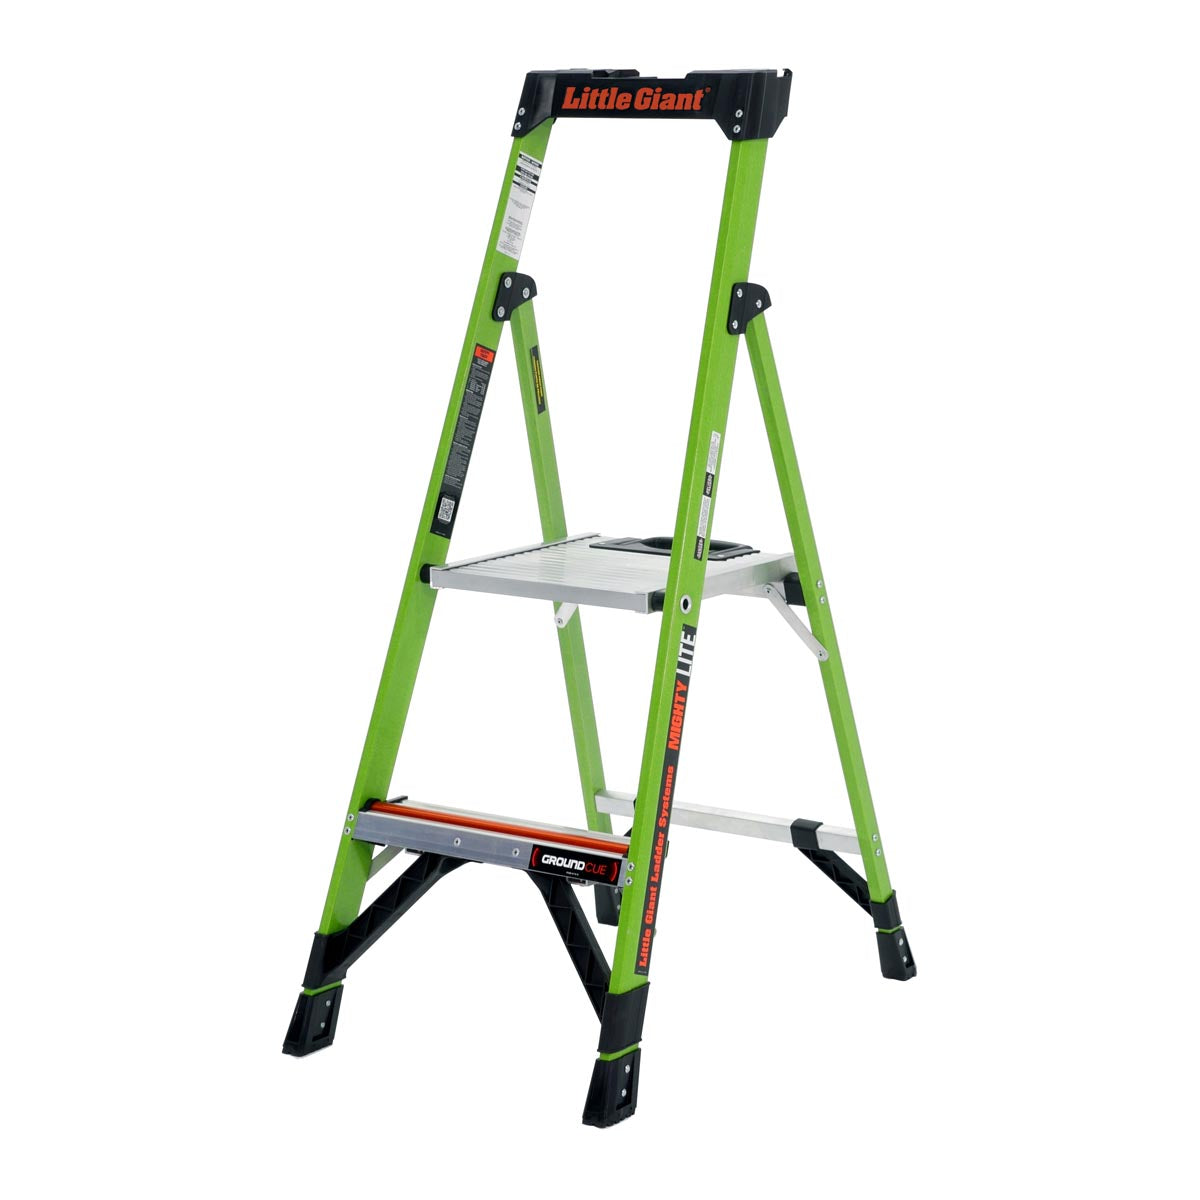 Little Giant Mightylite Ladder Type 1a Amp 1aa Mighty